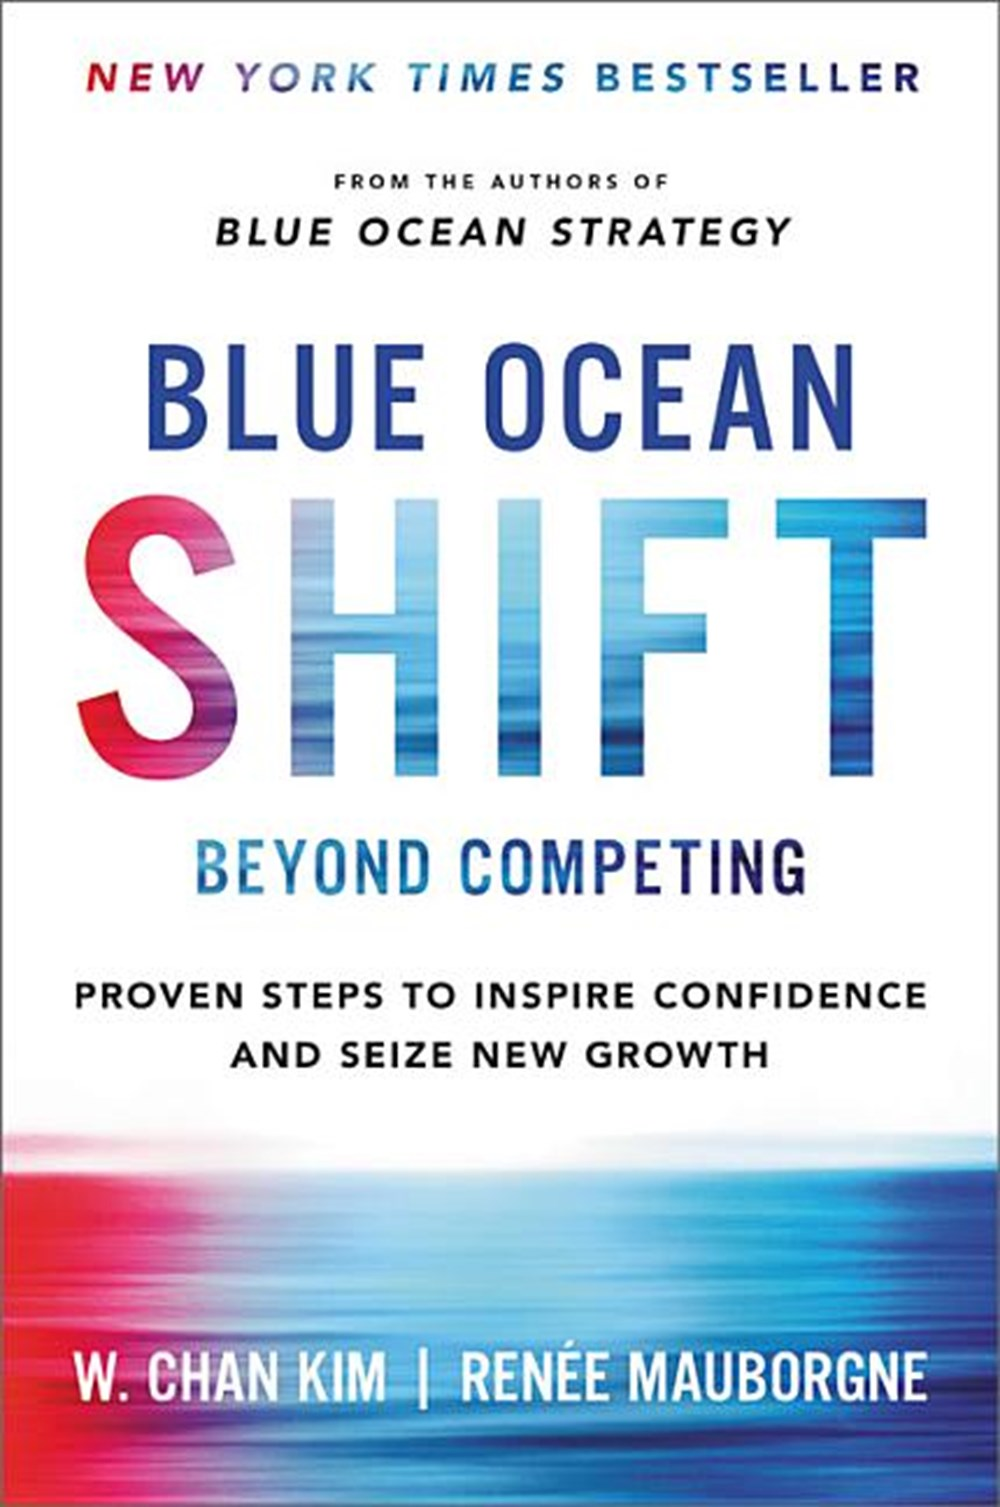 Blue Ocean Shift Beyond Competing - Proven Steps to Inspire Confidence and Seize New Growth